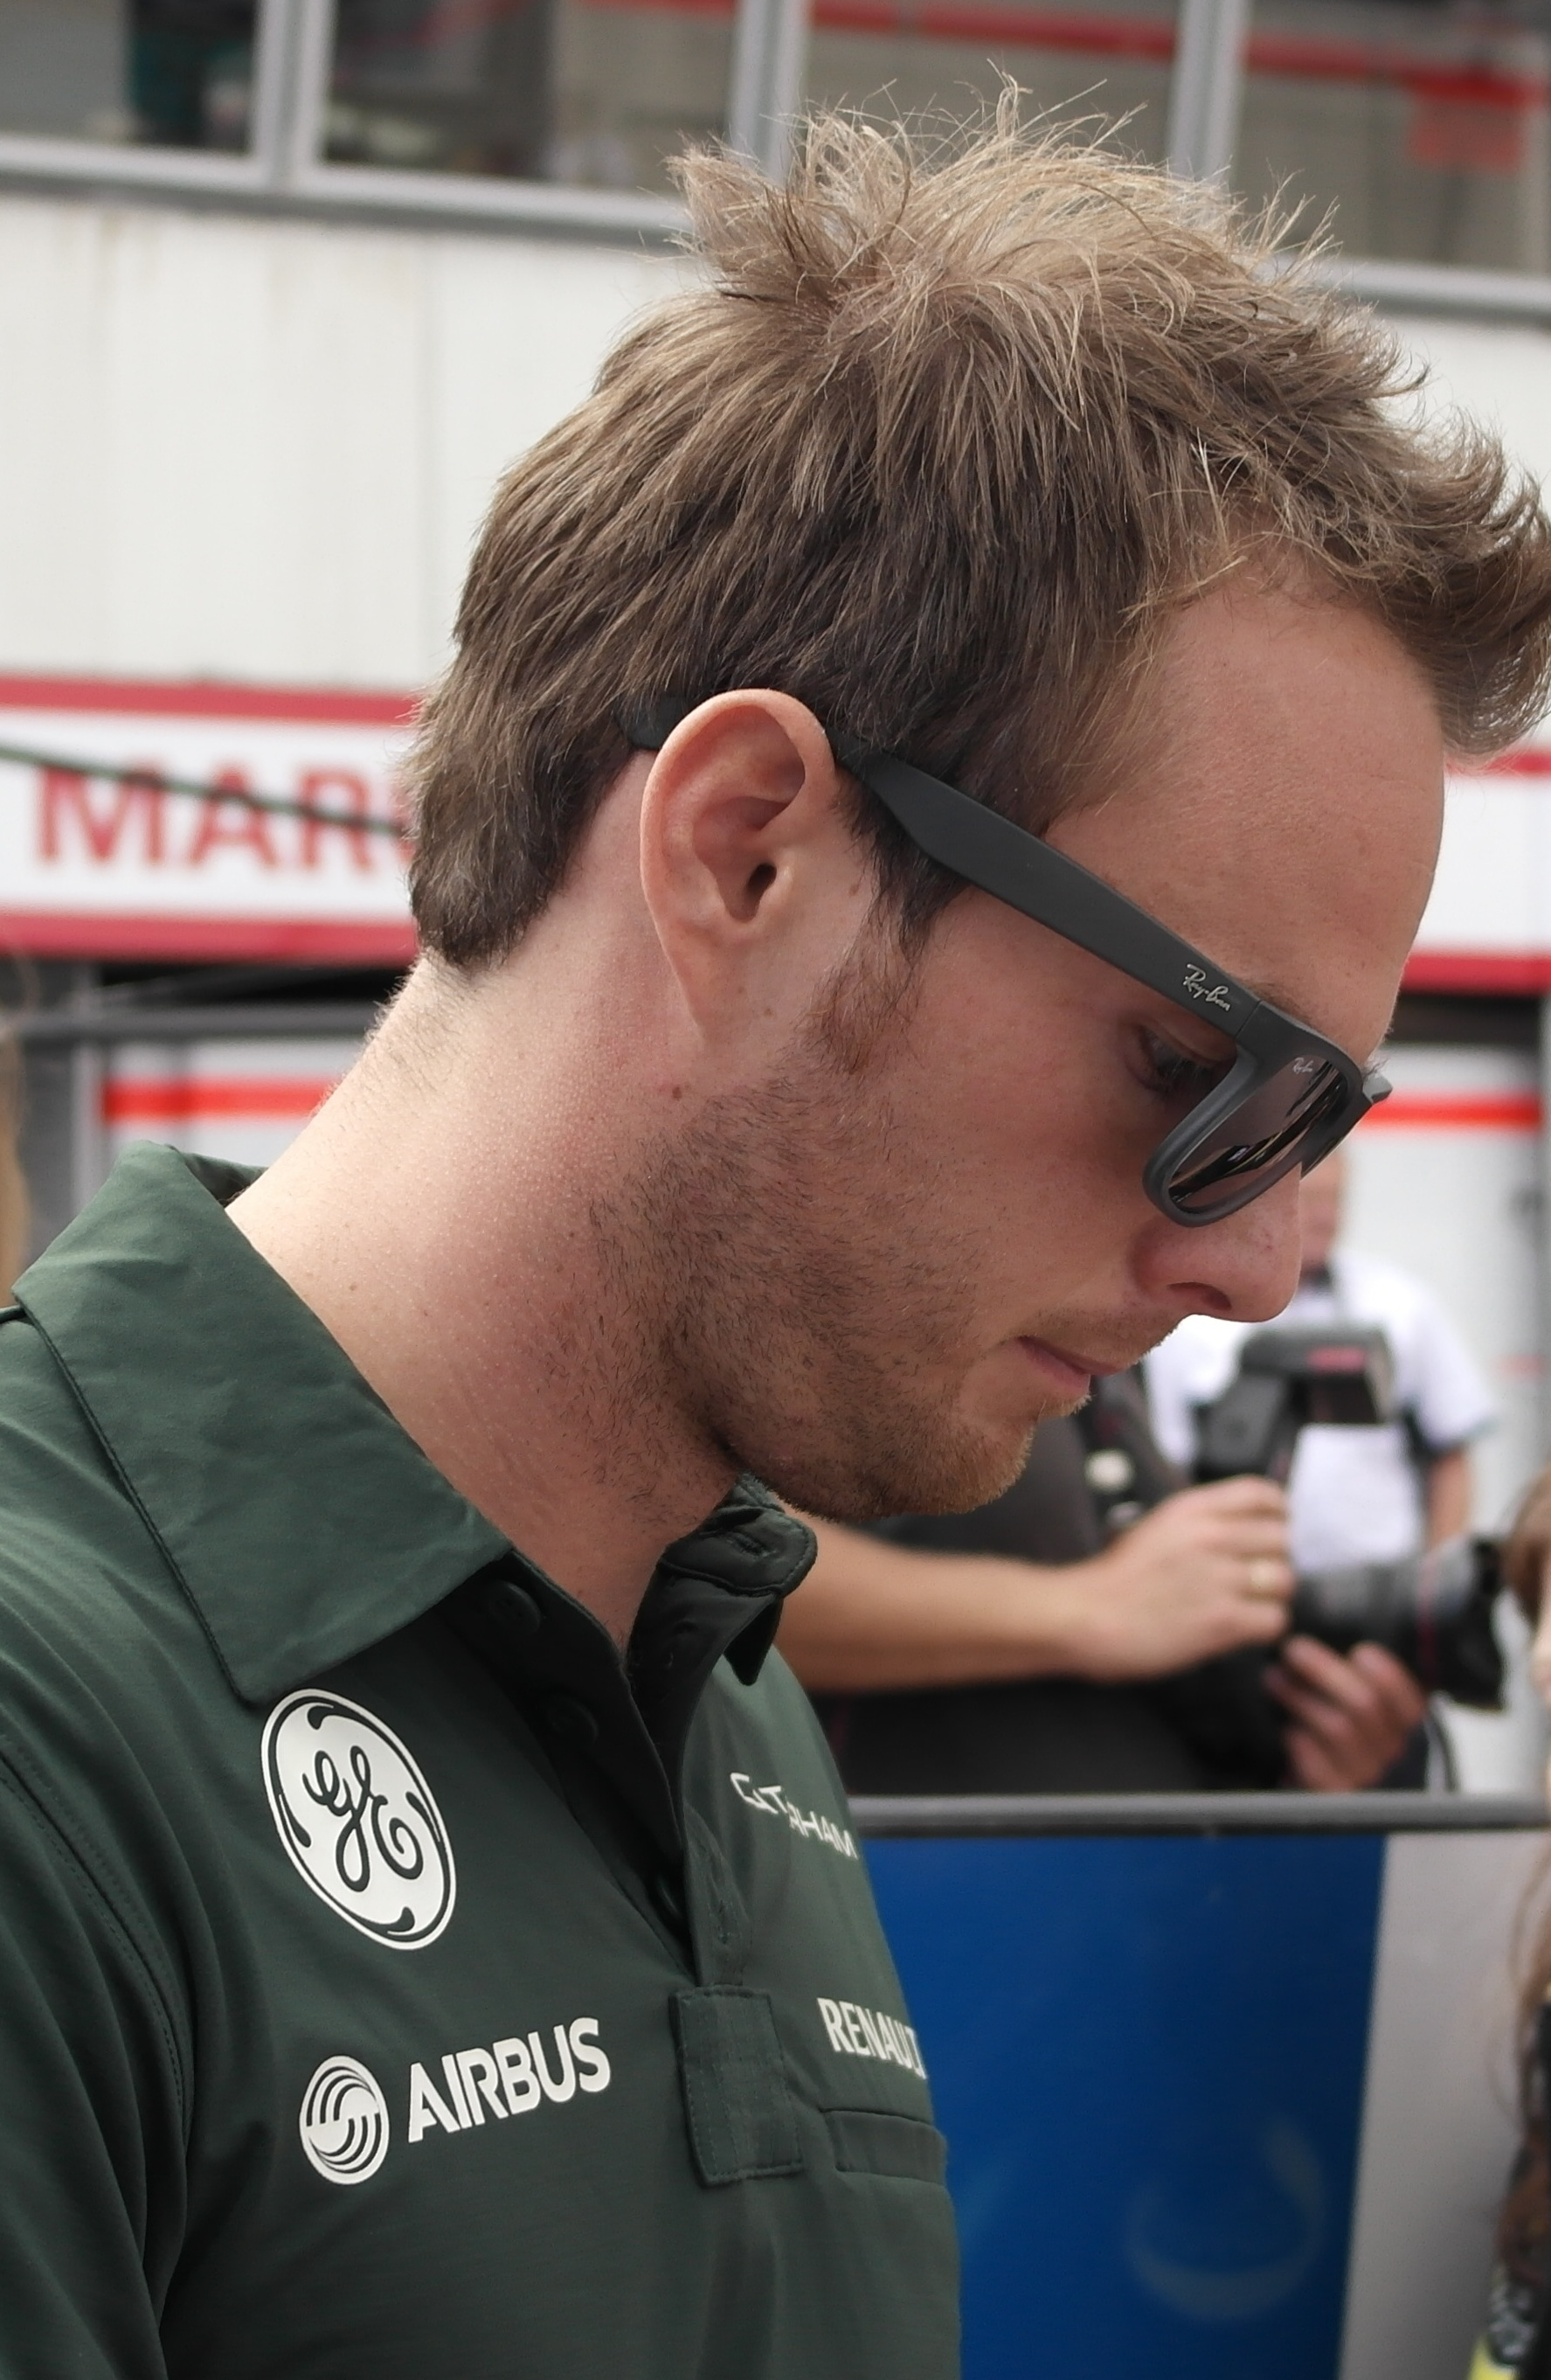 The 33-year old son of father (?) and mother(?) Giedo van der Garde in 2018 photo. Giedo van der Garde earned a  million dollar salary - leaving the net worth at 1.4 million in 2018